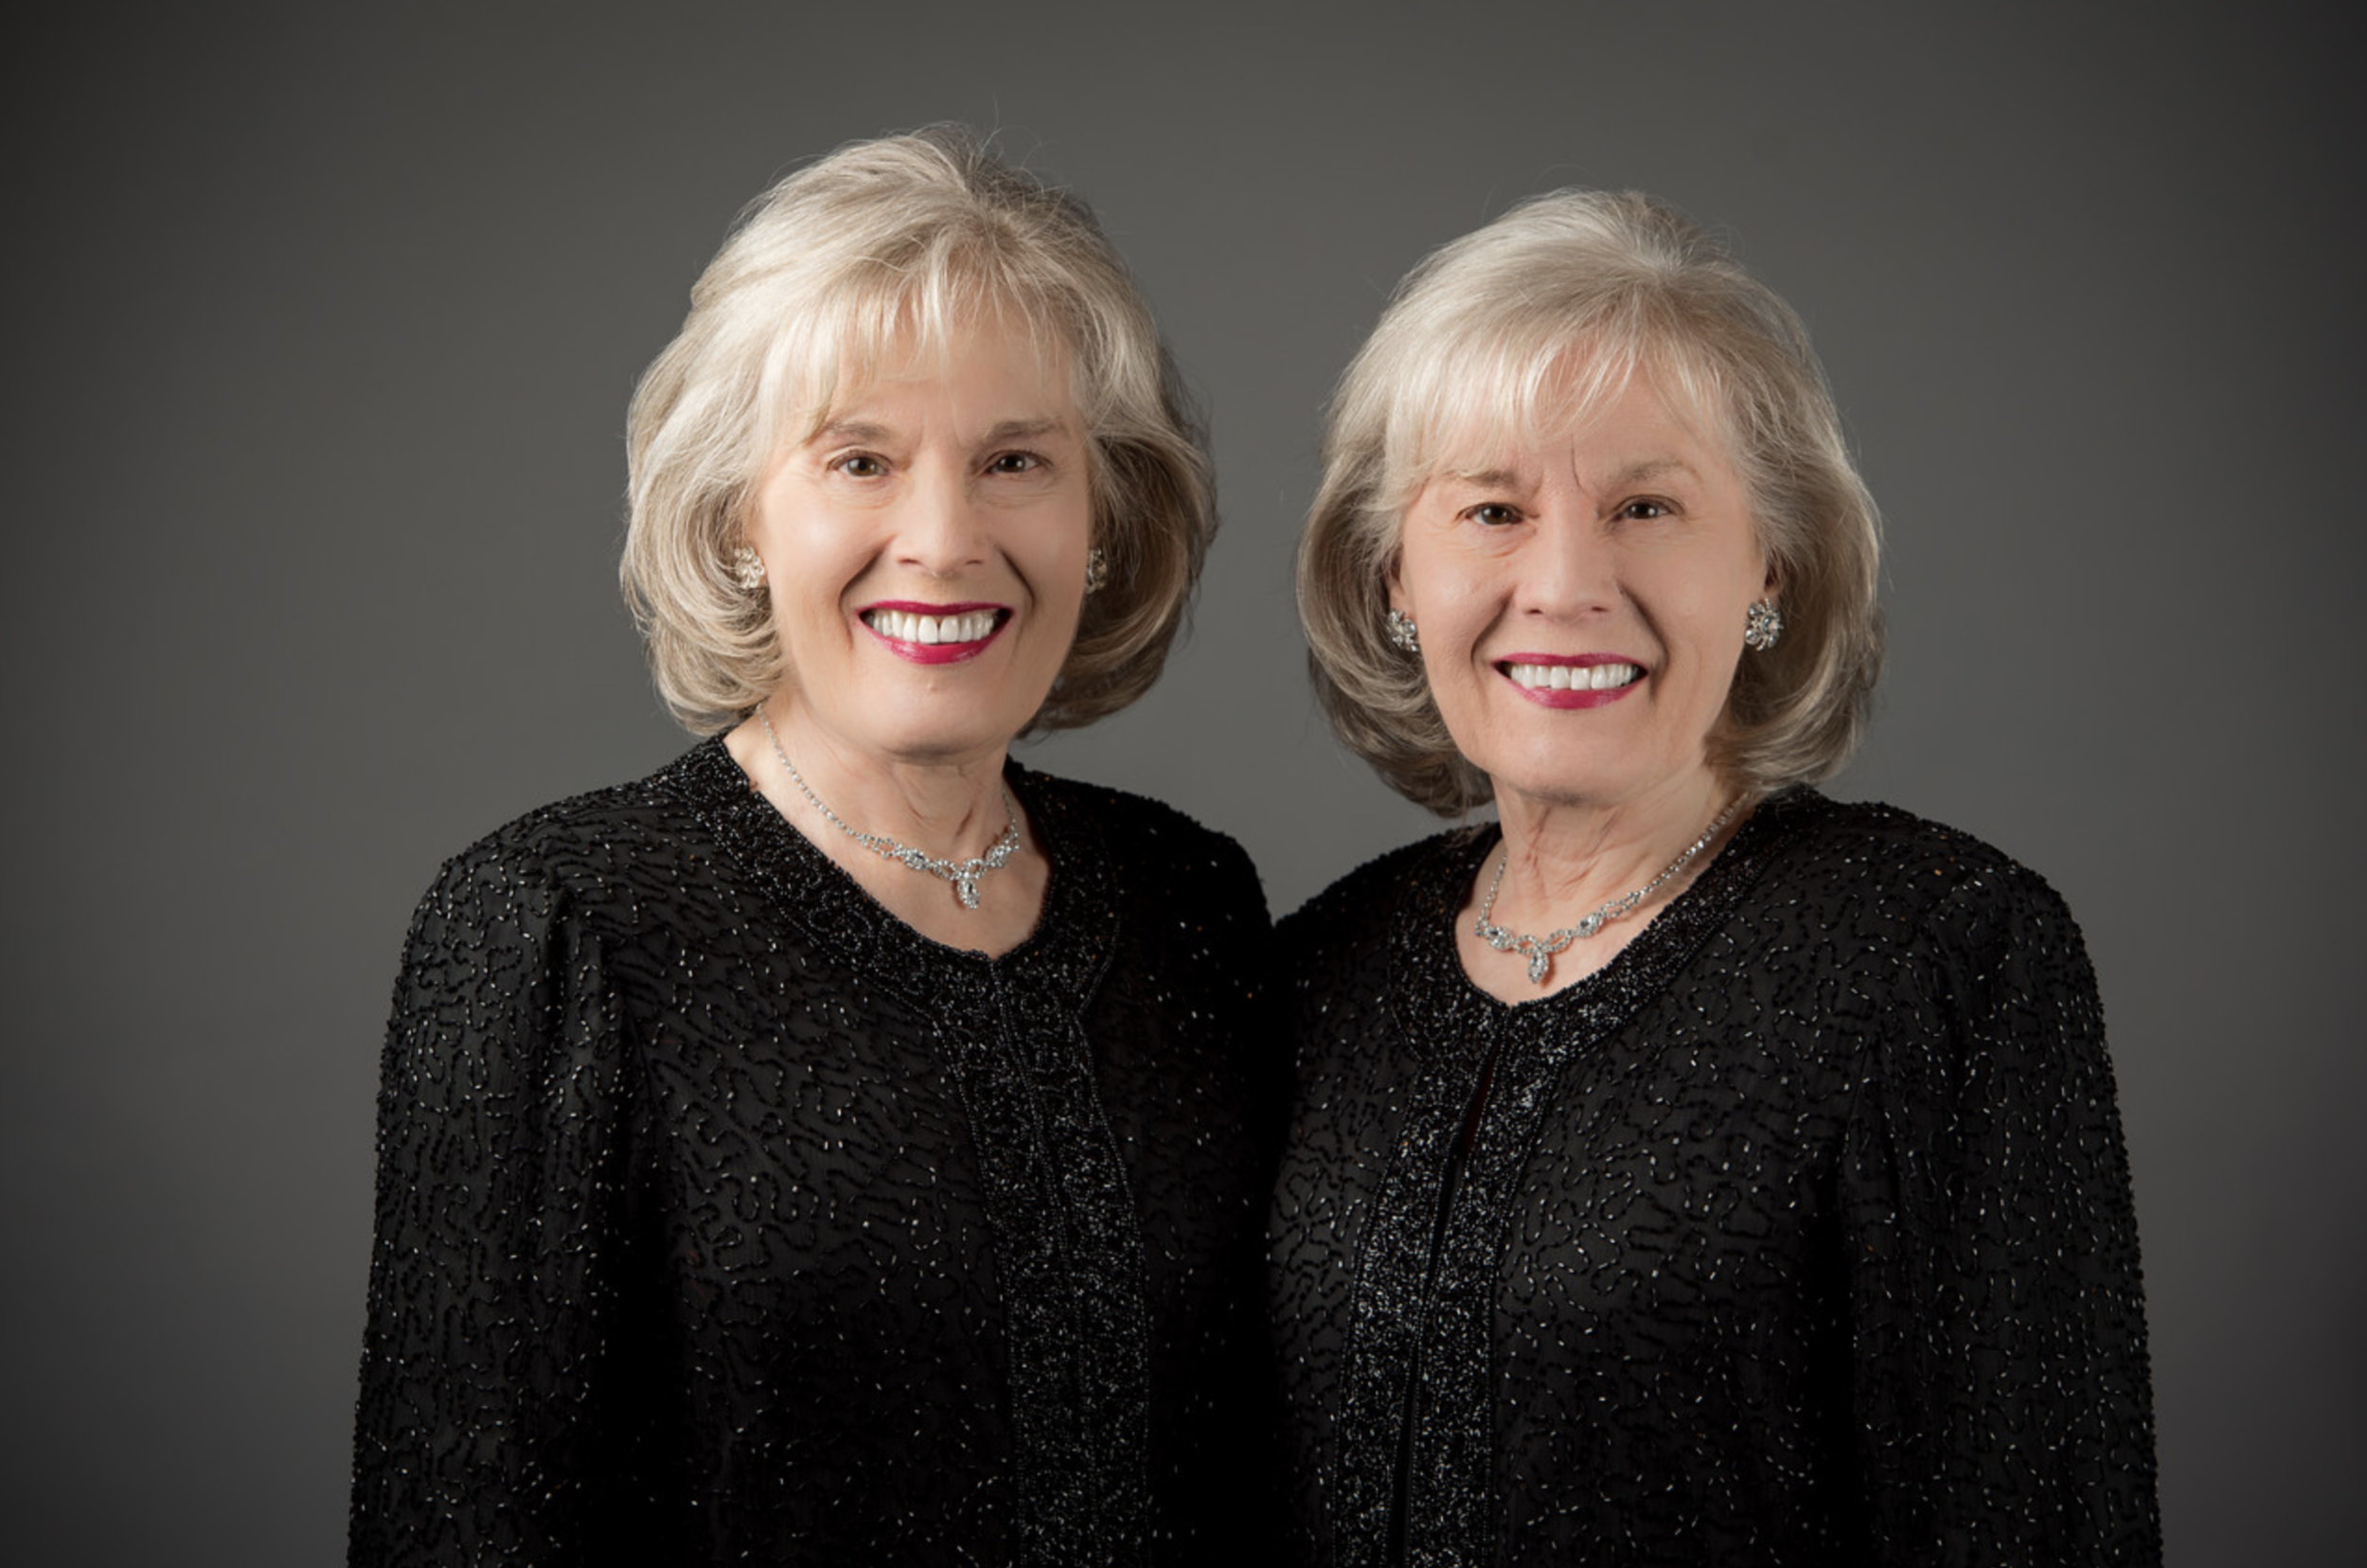 Alice Walker and Becky Ramsey, identical twins, are originally from Atlanta, Georgia. They both hold BA degrees from Agnes Scott College, and have earned two certifications from the American Guild of Organists, Colleague and Associate (AAGO). Playing duets together since the age of five, they have been pianists at Salem Campground since 1971.   Alice is Organist and Director of the Ambassador Choir and Handbell Choir at First Presbyterian Church, Covington, where she is also Moderator of Presbyterian Women. She has recently been appointed Leader of District Five of the Greater Atlanta Presbytery. Alice is a past Certified Lay Speaker of the United Methodist Church and has served as President of the Clergy Spouses of the Atlanta-Roswell District and the Southeastern Jurisdiction. She is past Regent of the Colonel John McIntosh Chapter of the National Daughters of the American Revolution, where she won the Best of Class national prize for Musical Composition.   Becky is Organist and Director of Music for Senior Adults at Covington First United Methodist Church and is Director of Spiritual Growth for the United Methodist Women. She holds the Conference level certification as Lay Servant of the North Georgia Conference of the United Methodist Church. Becky received the Outstanding Young Woman of the Arts Award and the Outstanding Officer Award from the Covington Service Guild of the Georgia Association of Women's Clubs, and was presented the Outstanding Young Woman of America award.   Alice is married to Ken Walker, retired from WSB Television, and Becky to Sam Ramsey, President of Ramsey Furniture Company and former Mayor of Covington.